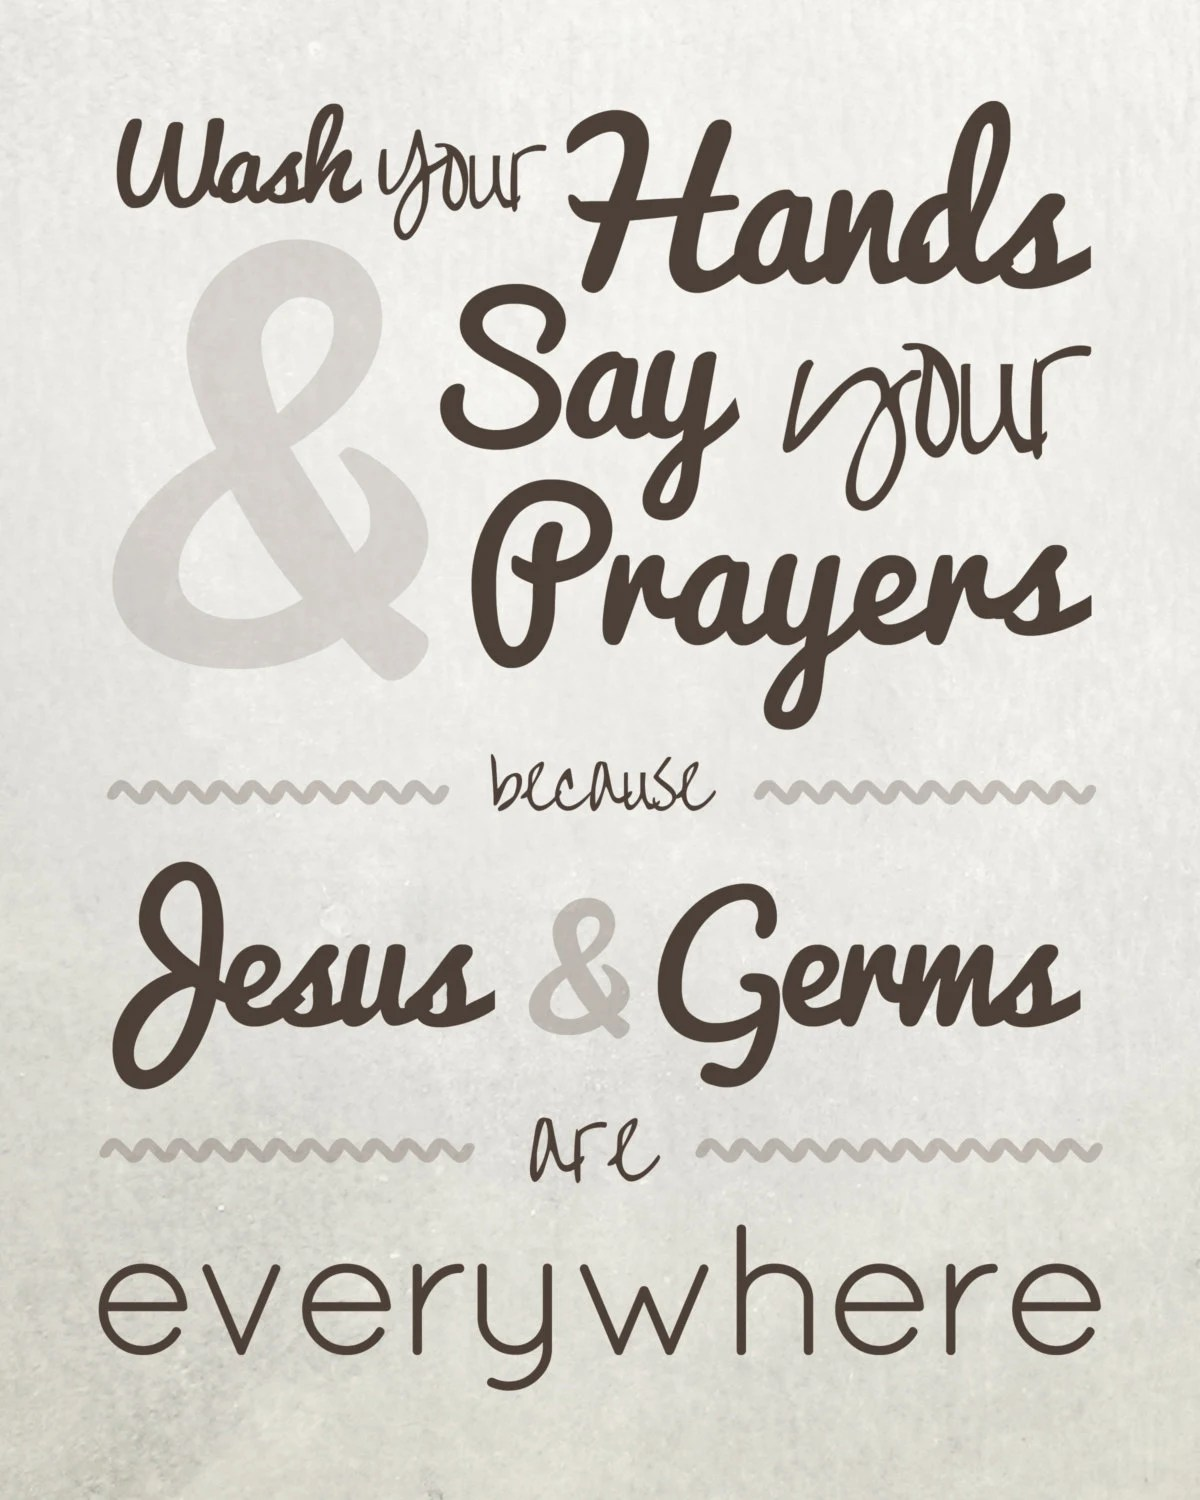 photograph regarding Wash Your Hands and Say Your Prayers Printable named And Given that Arms Prayers Printable Clean All over the place And Say